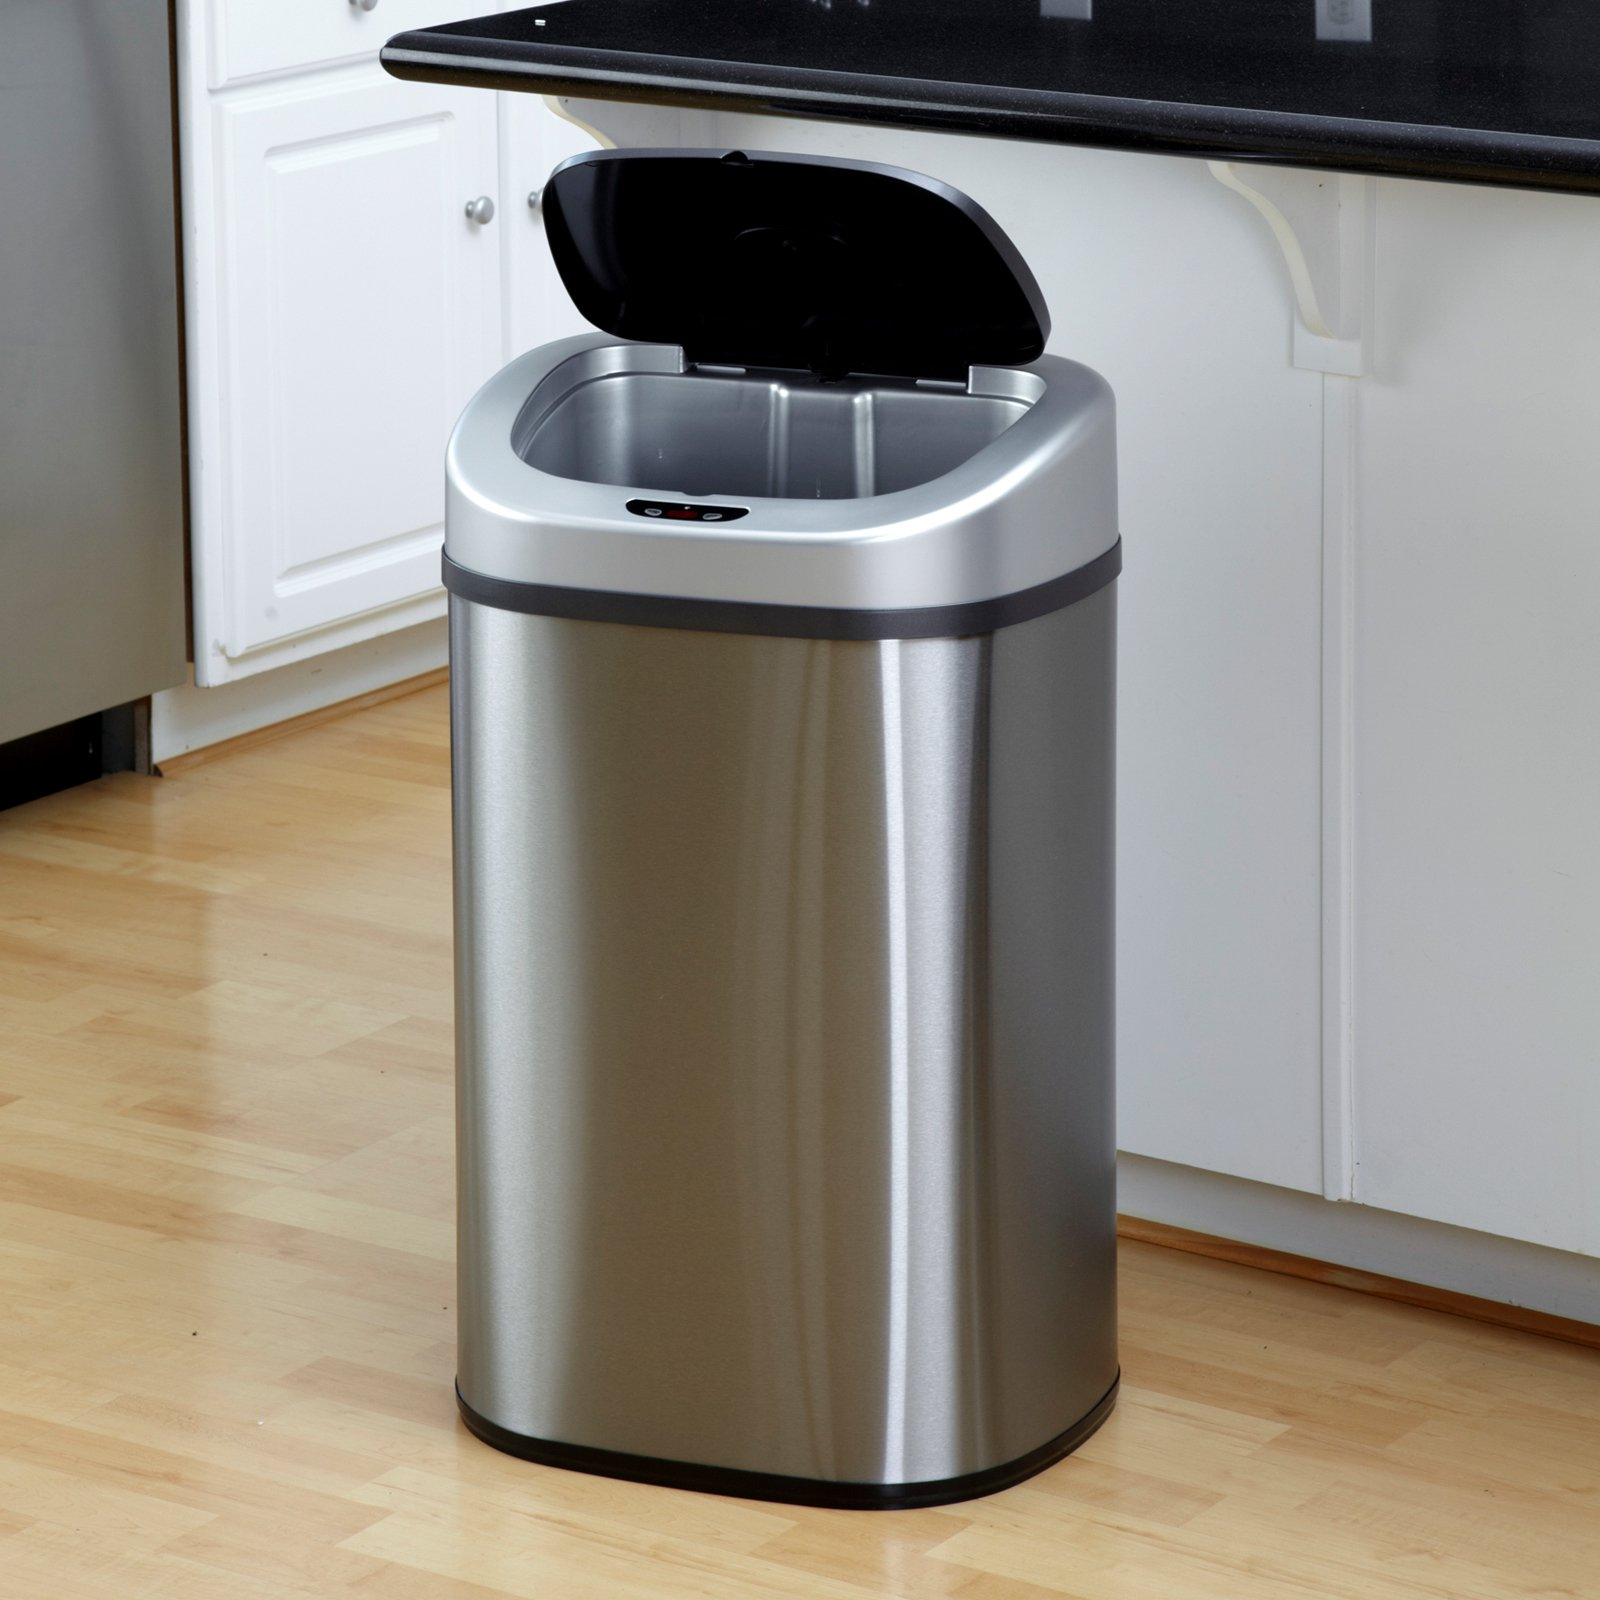 Nine Stars DZT-80-4 Touchless Stainless Steel 21.1 Gallon Trash Can